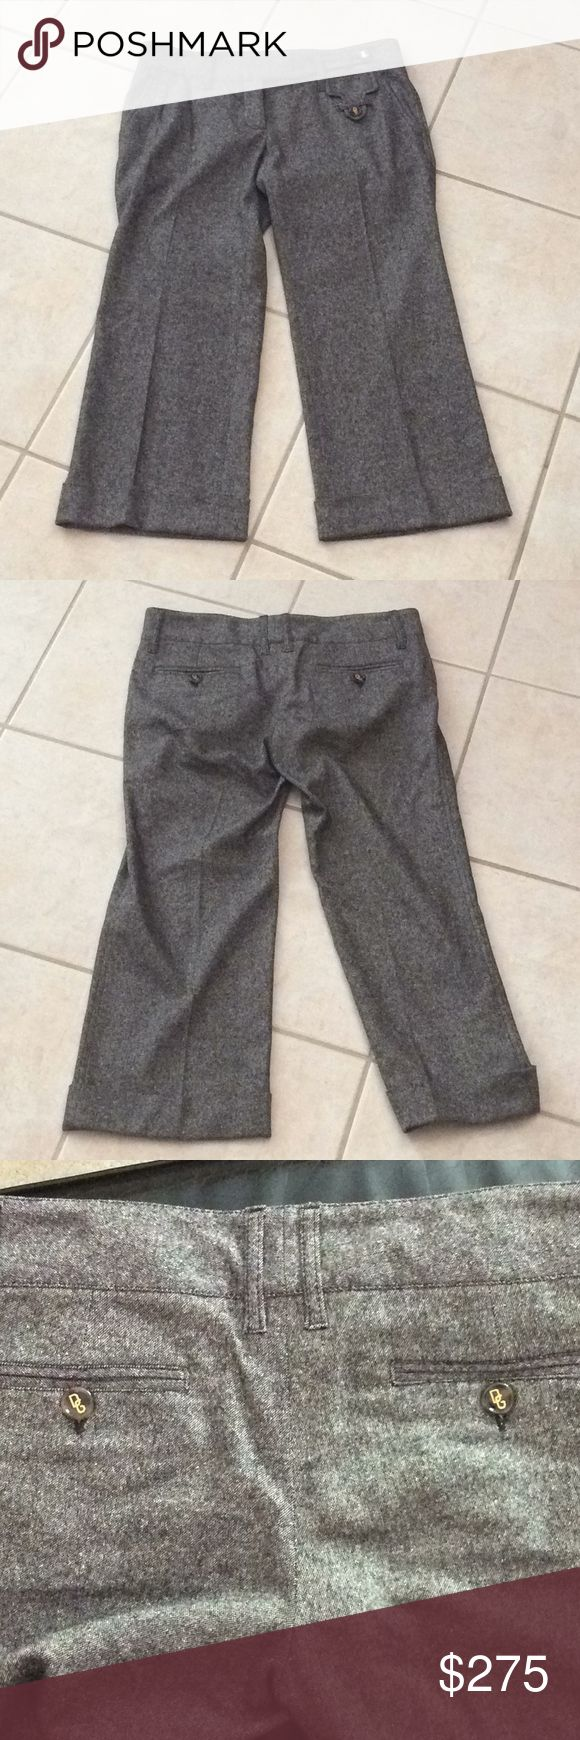 Dolce and Gabbana cropped wool pants Dolce and Gabbana cropped wool pants Dolce & Gabbana Pants Capris